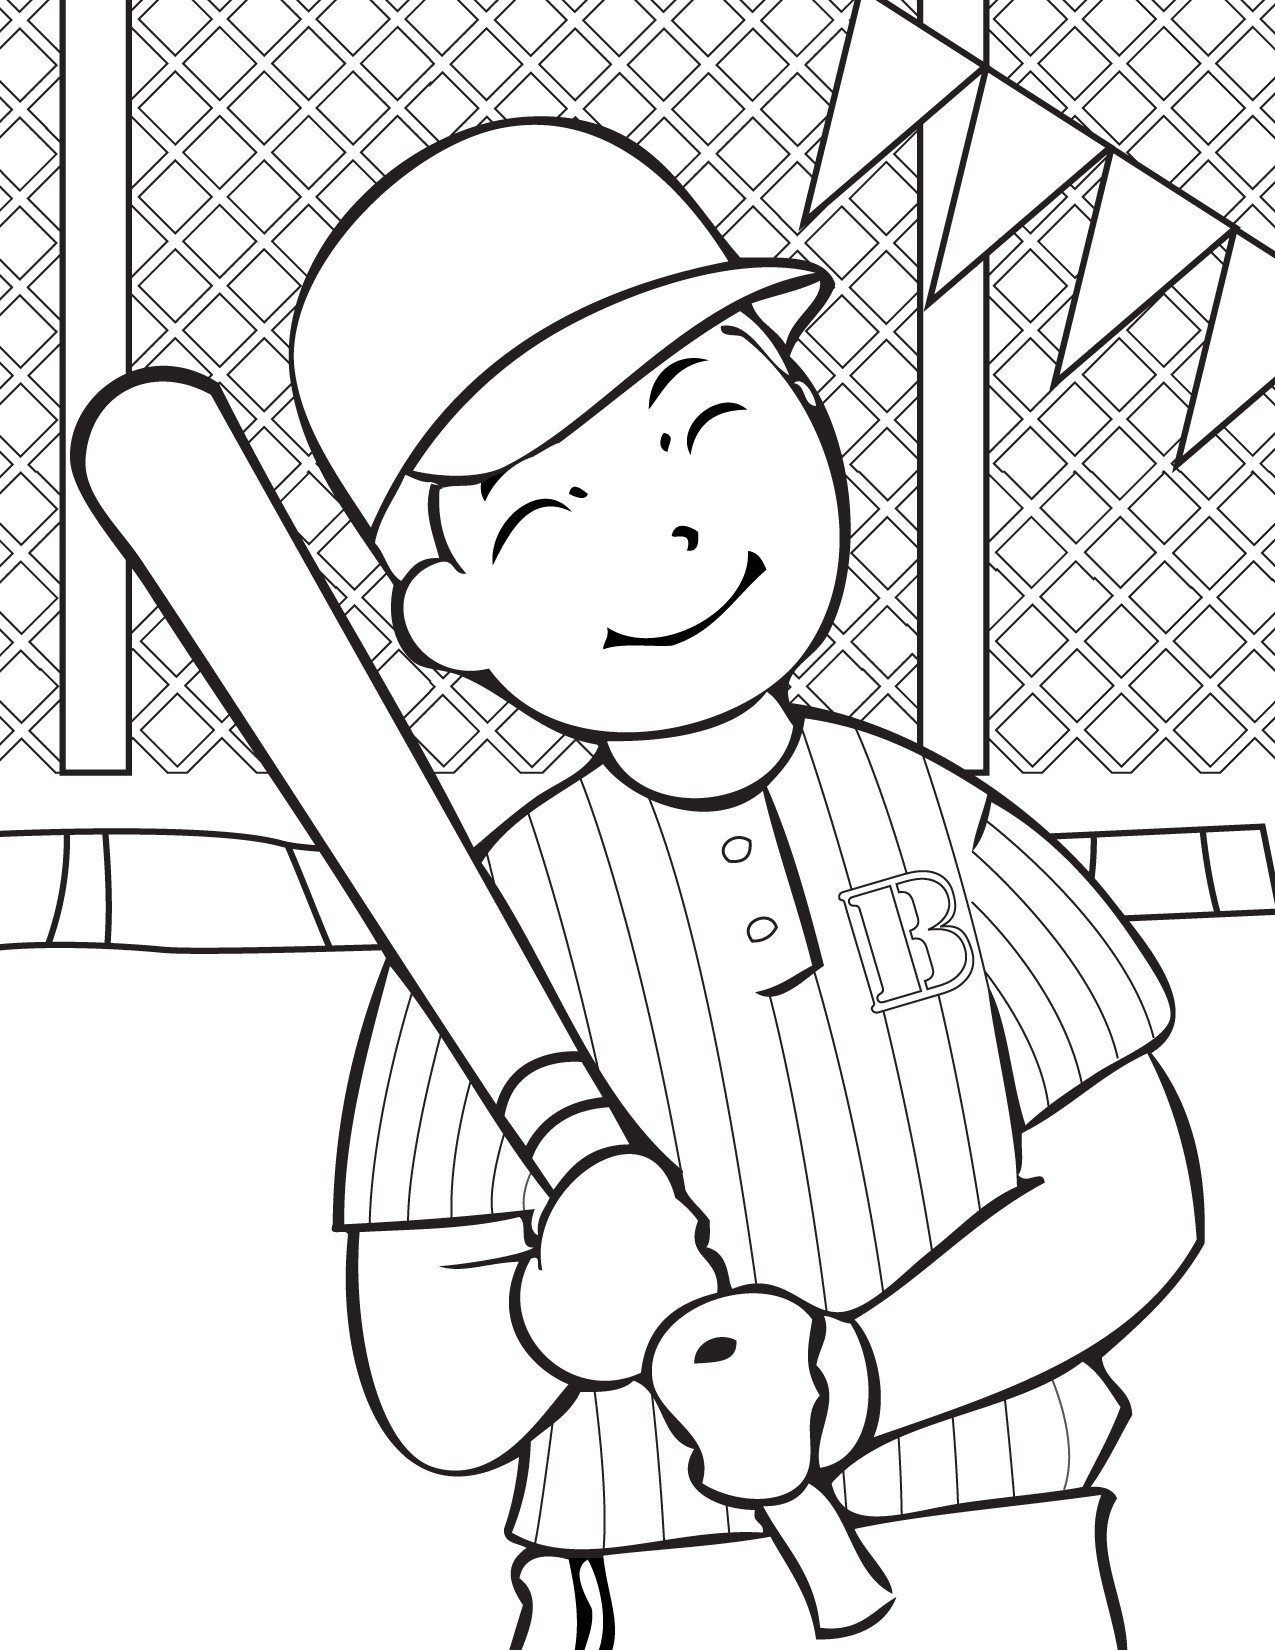 1275x1650 Coloring For Kids Pages Mlb Baseball Players Mascots Printable